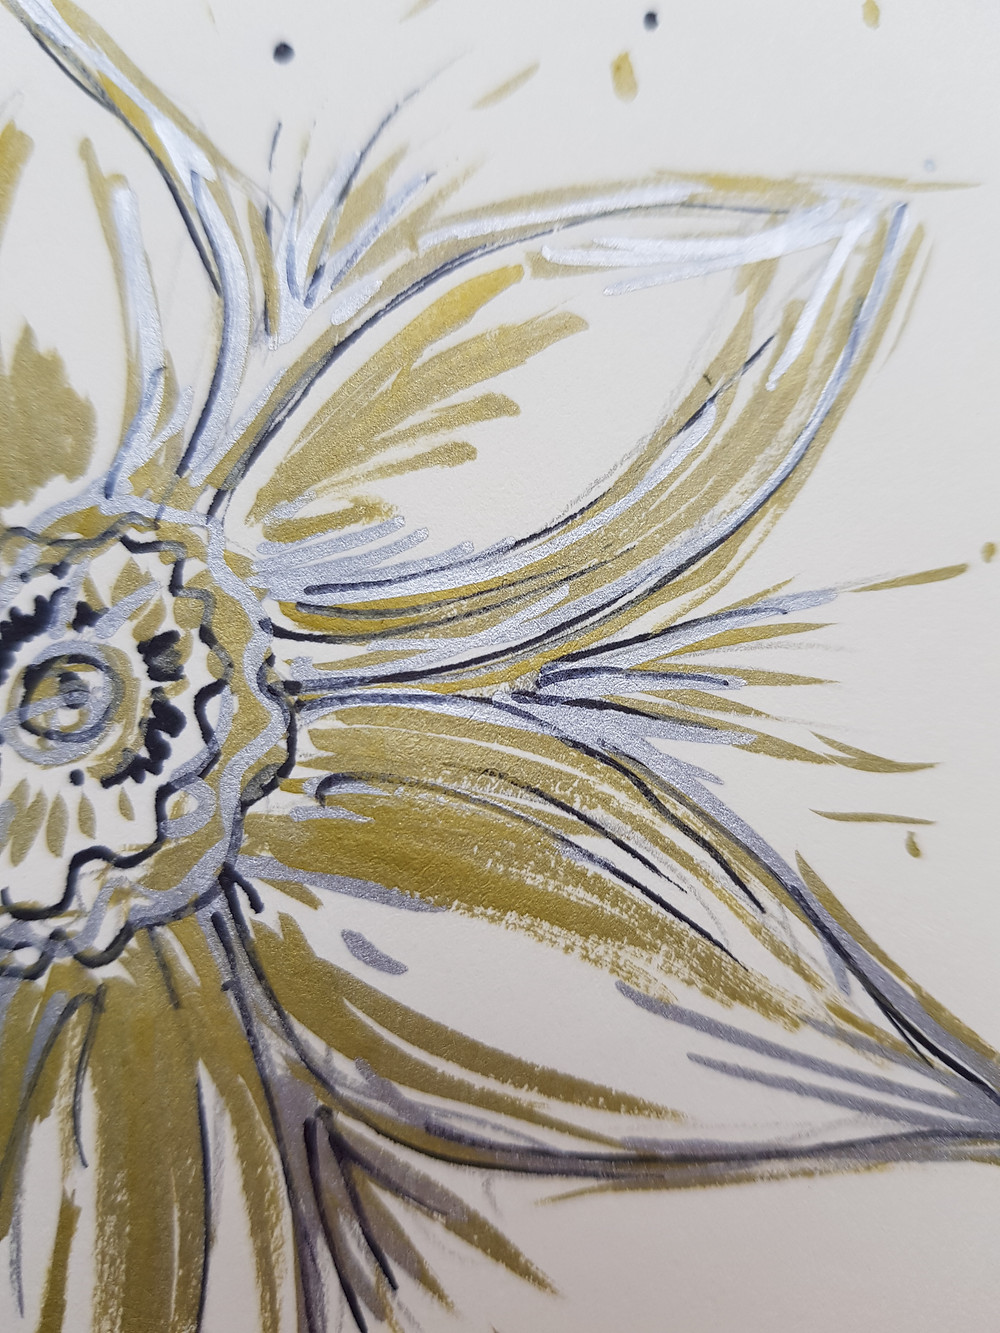 Drawing of a Daffodil. Ink and Pen